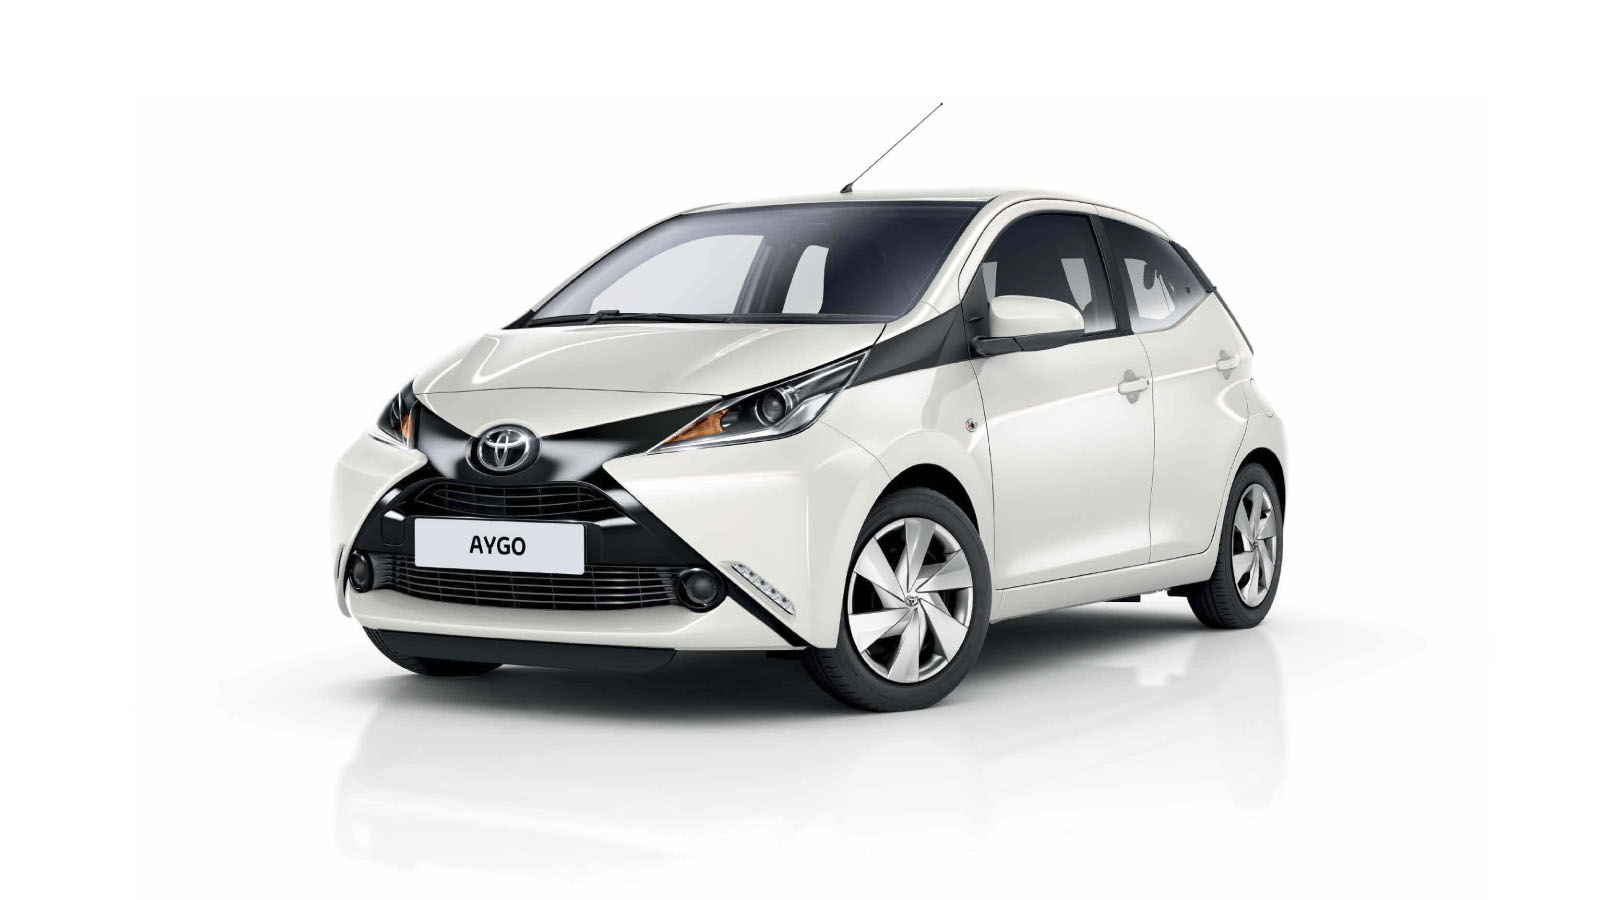 aygo la 4 cv populaire de toyota arrive en tunisie partir de dinars. Black Bedroom Furniture Sets. Home Design Ideas